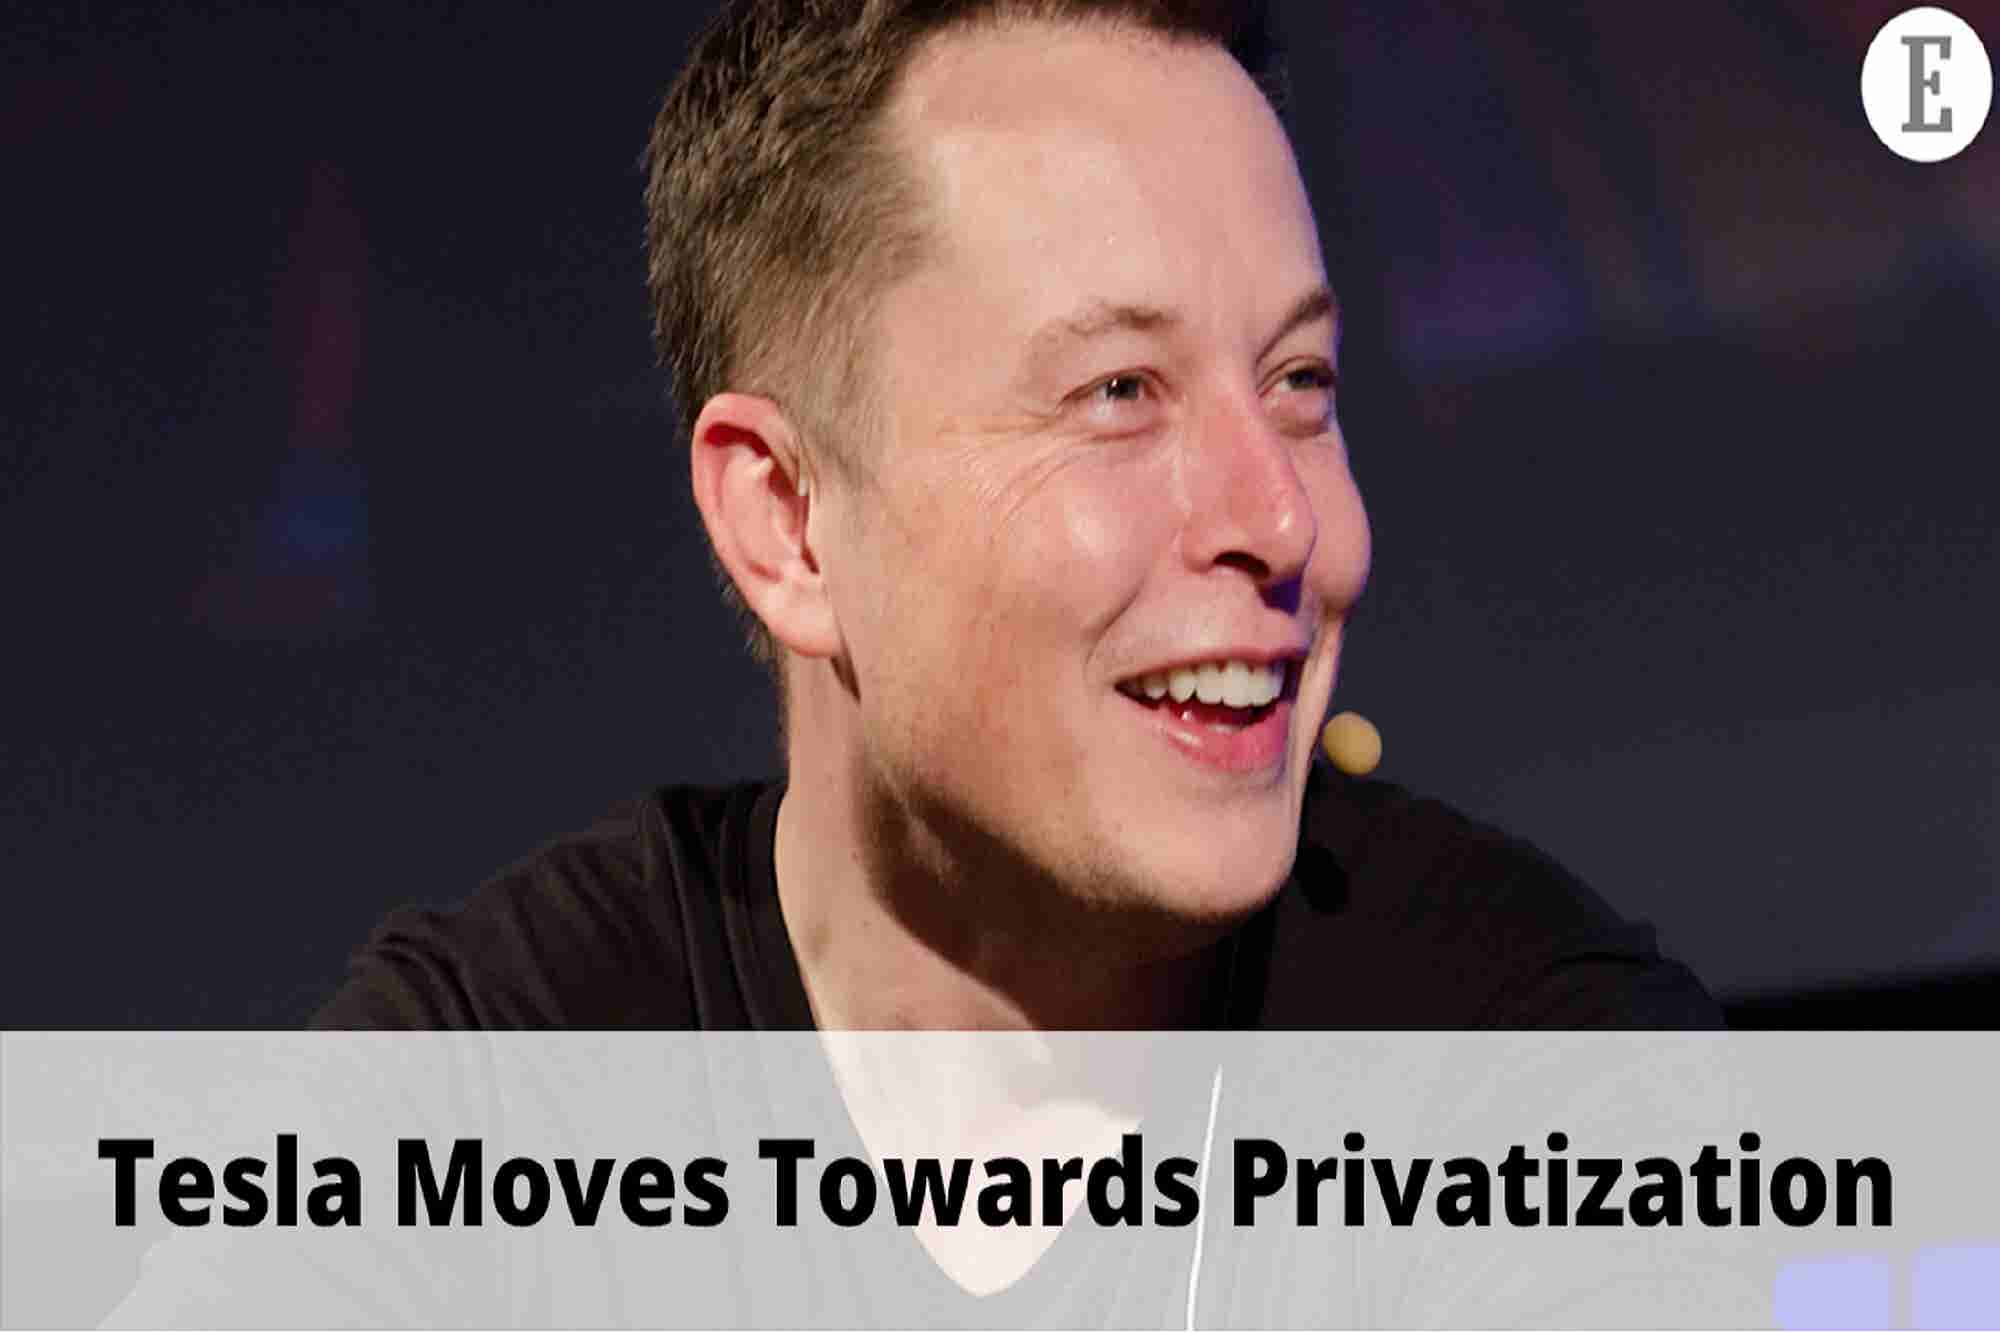 Elon Musk to Take Tesla Private & MS Dhoni is Back For His Second Inni...